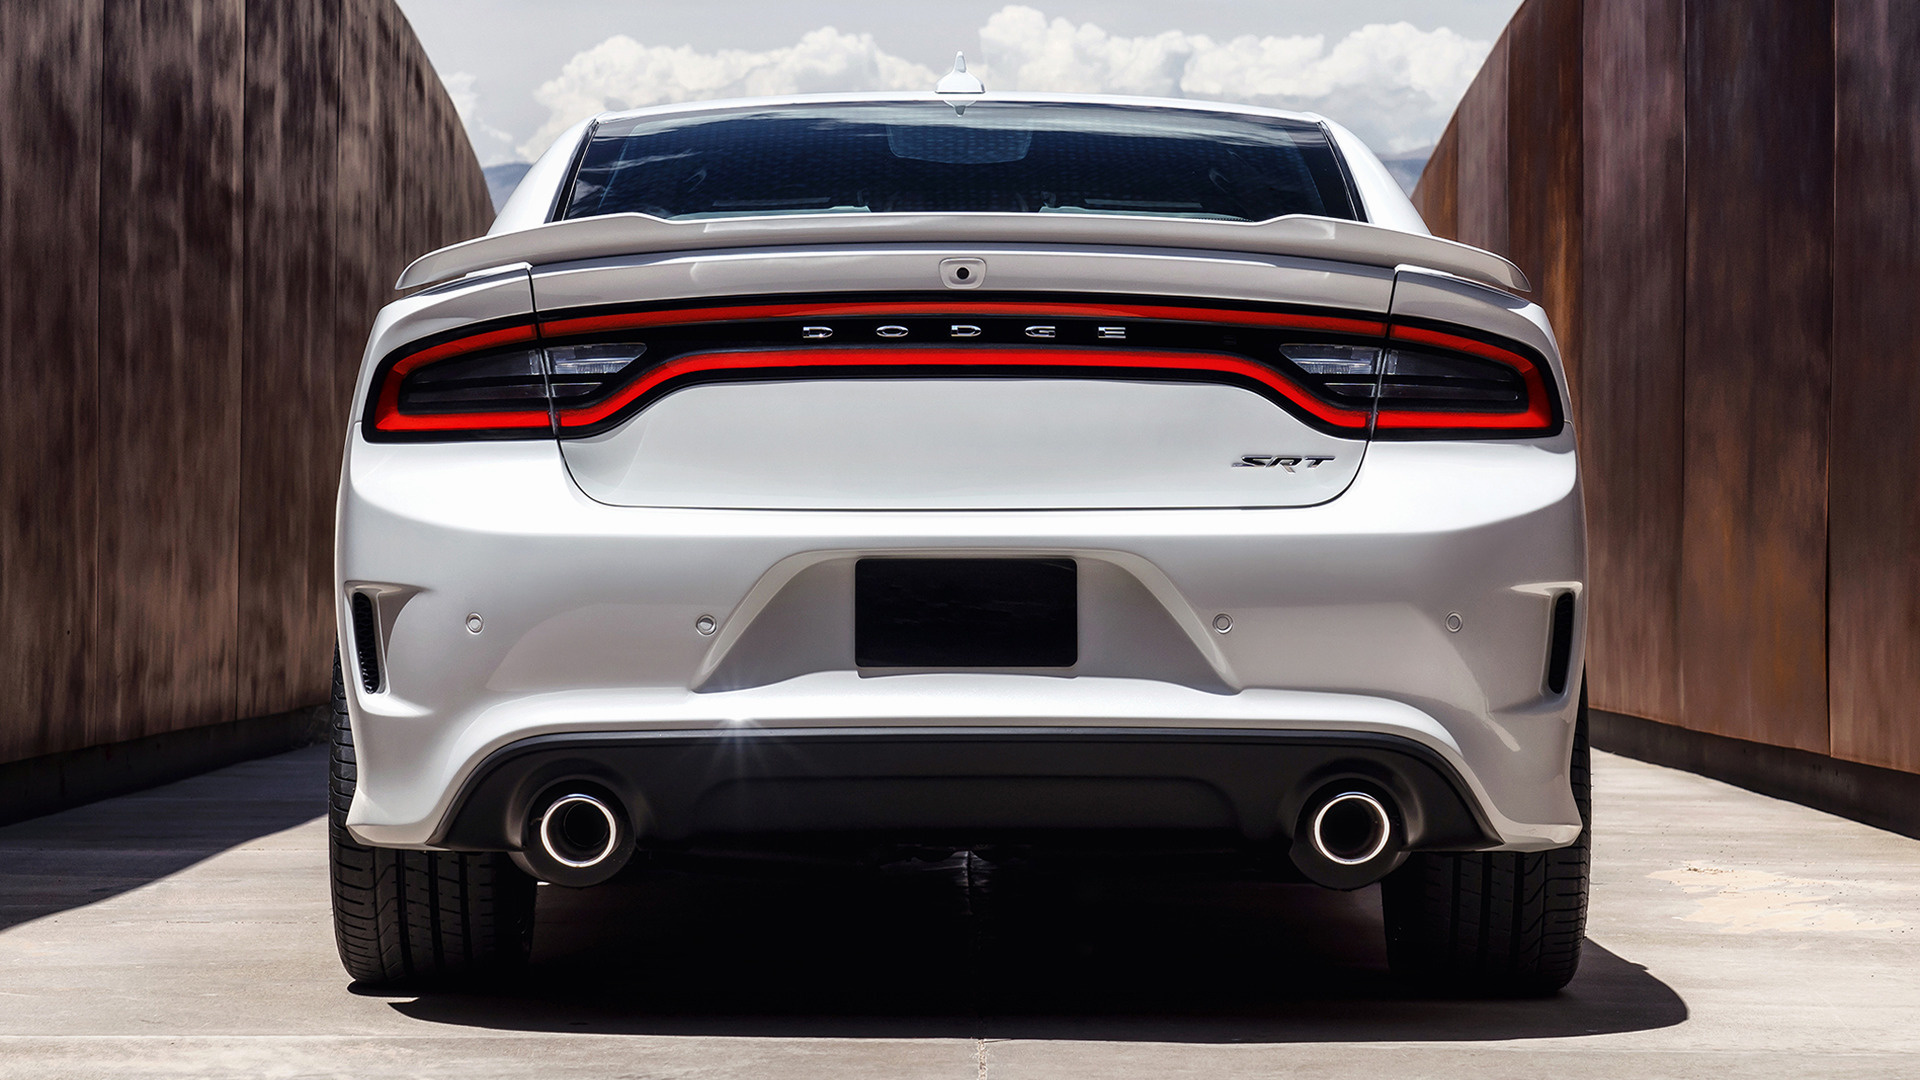 2015 Dodge Charger Srt Hellcat Wallpapers And Hd Images